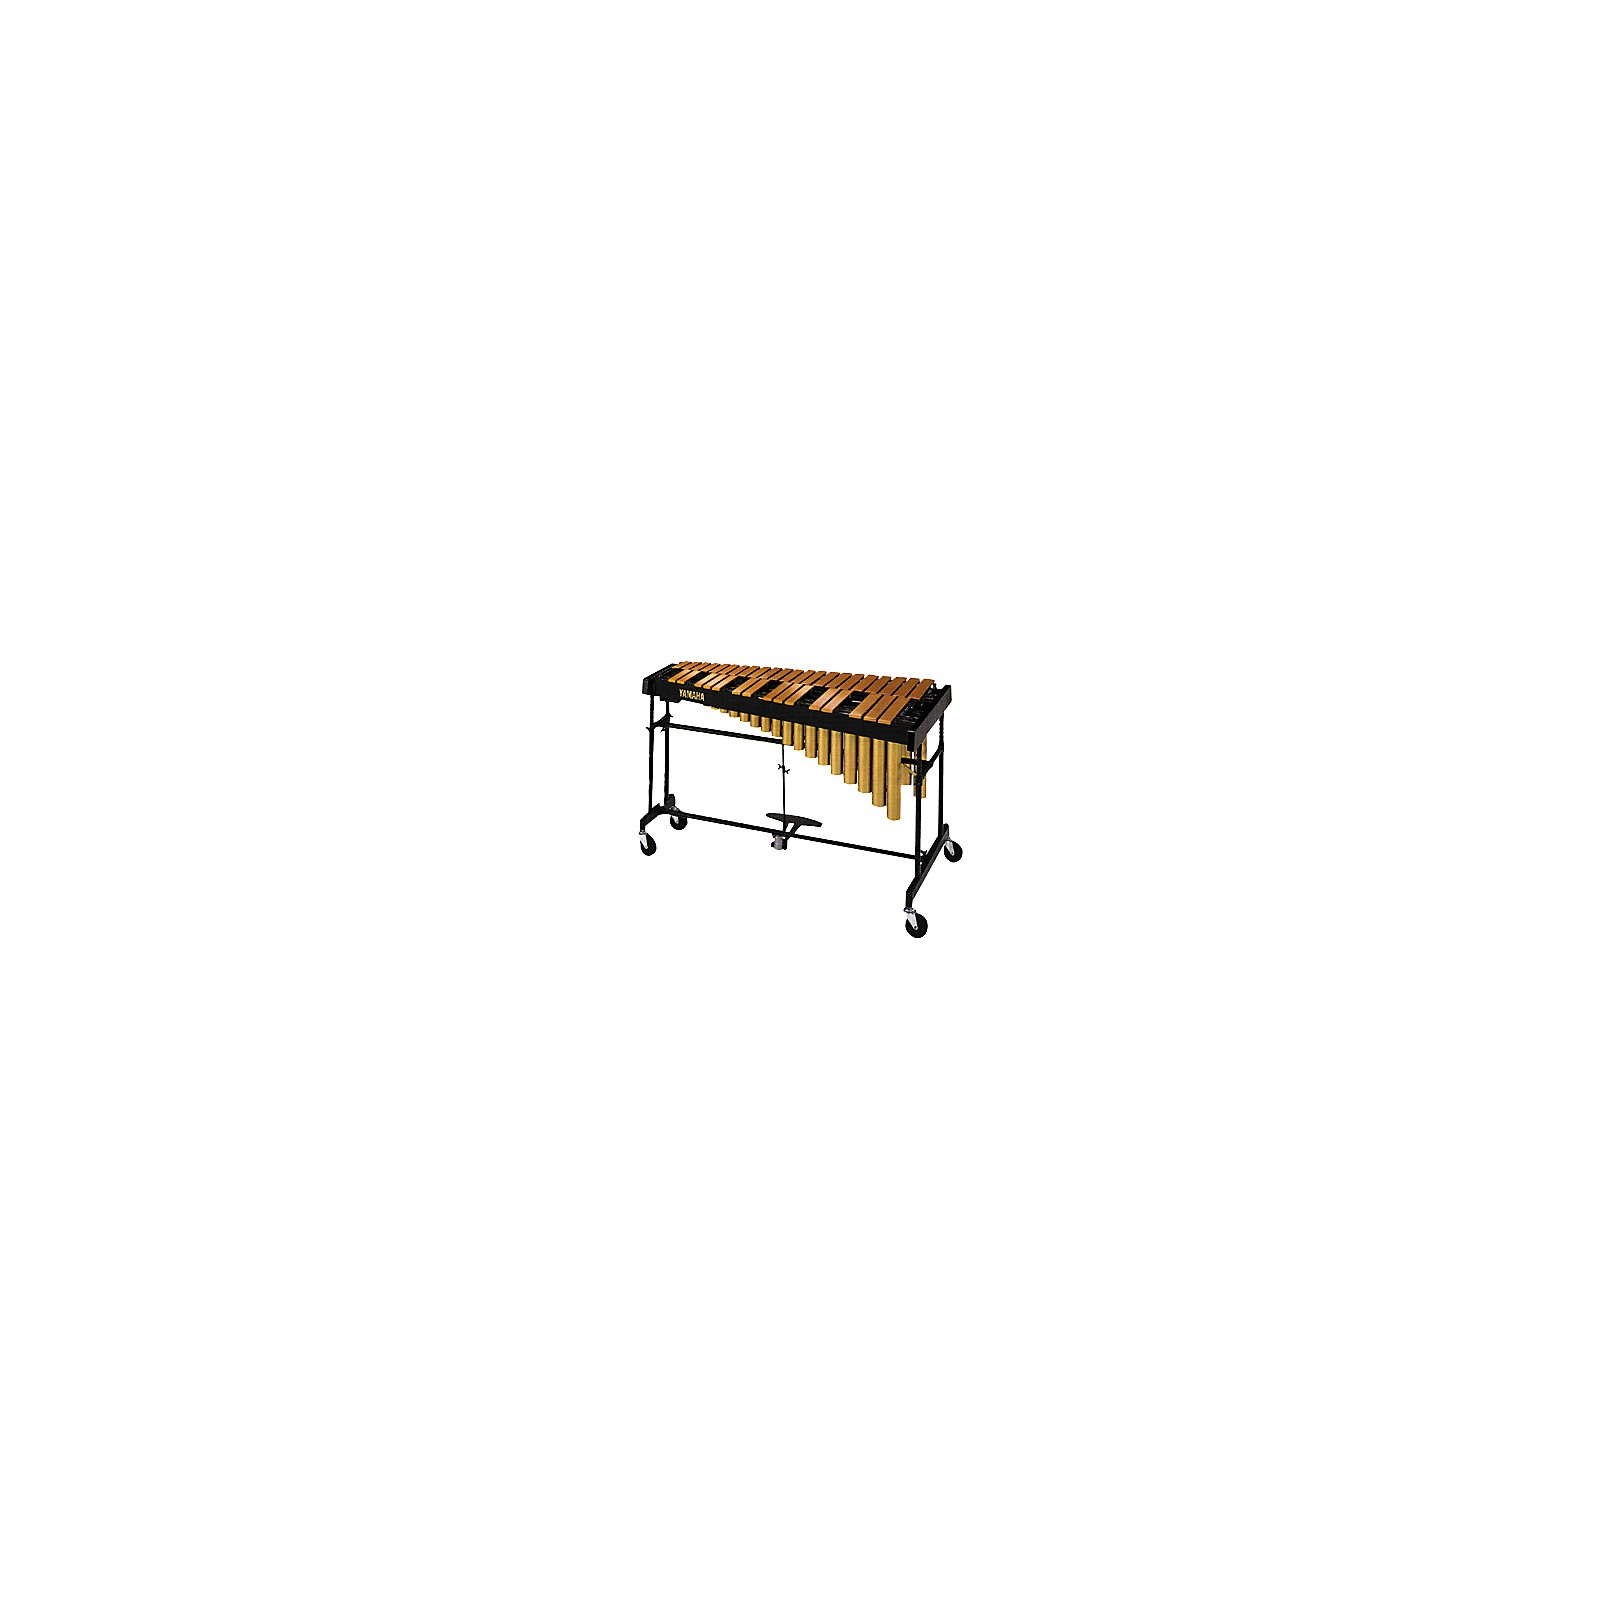 Yamaha YVRD-2700GC Gold Intermediate Vibraphone With Multi-Frame II Stand and Cover 582355